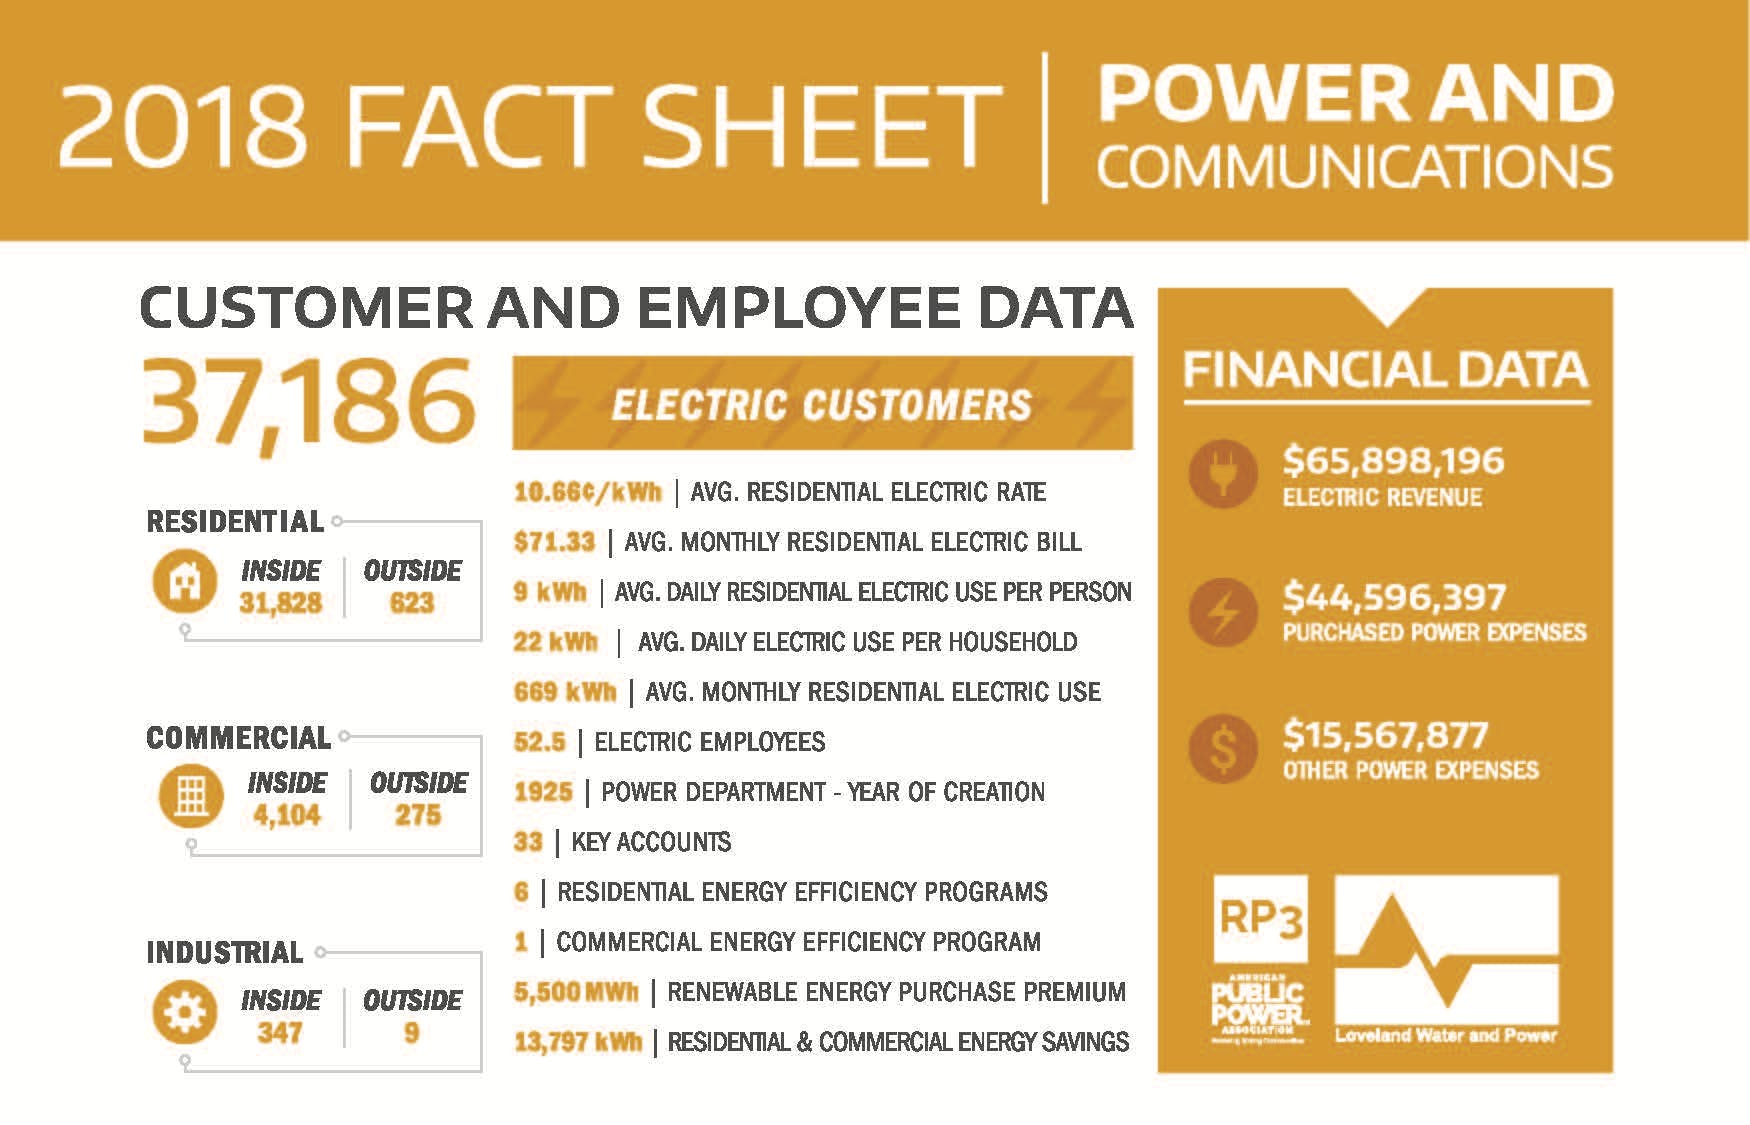 2018 Power and Communications Fact Sheet